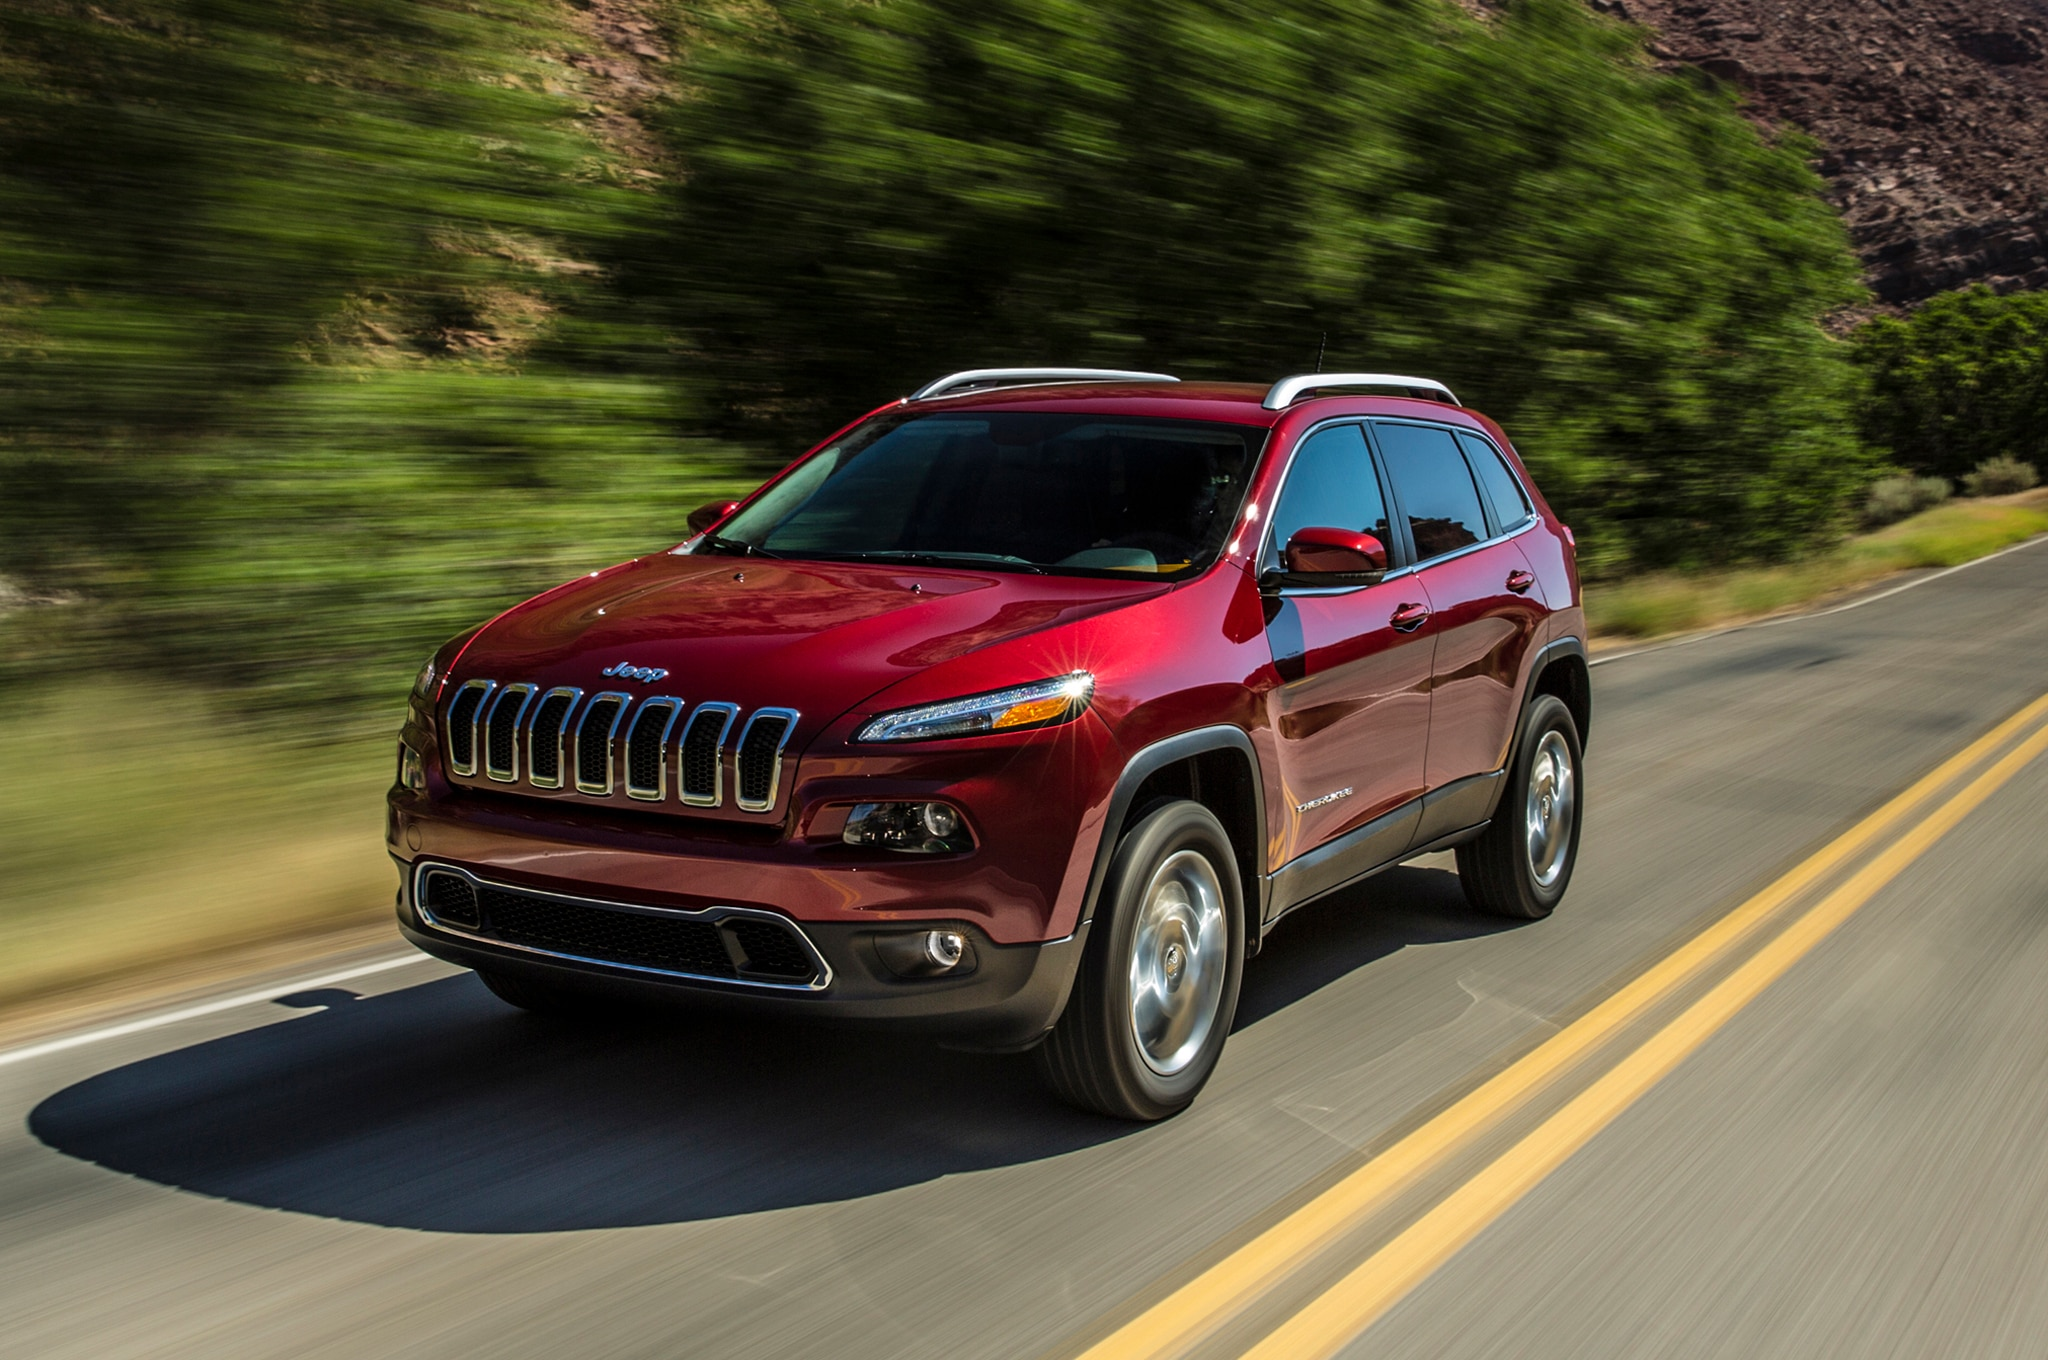 2014 Jeep Cherokee Front Three Quarters1